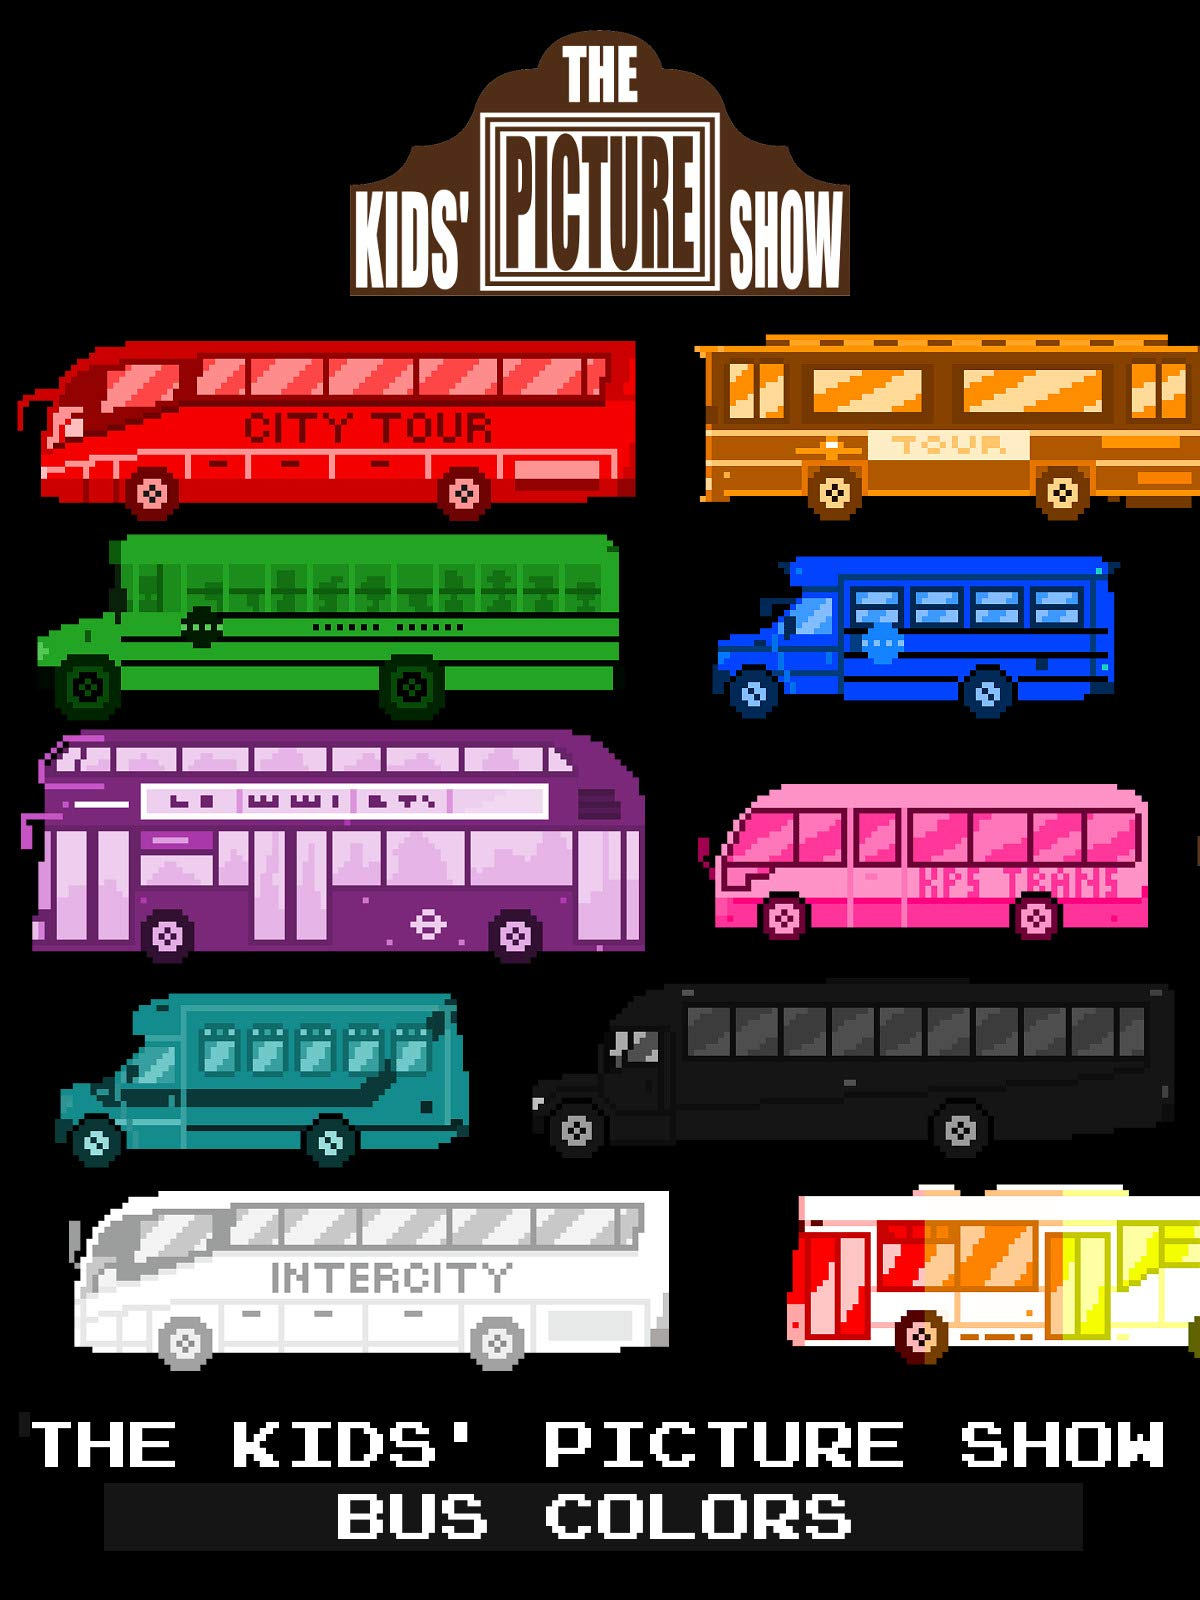 The Kids' Picture Show - Bus Colors